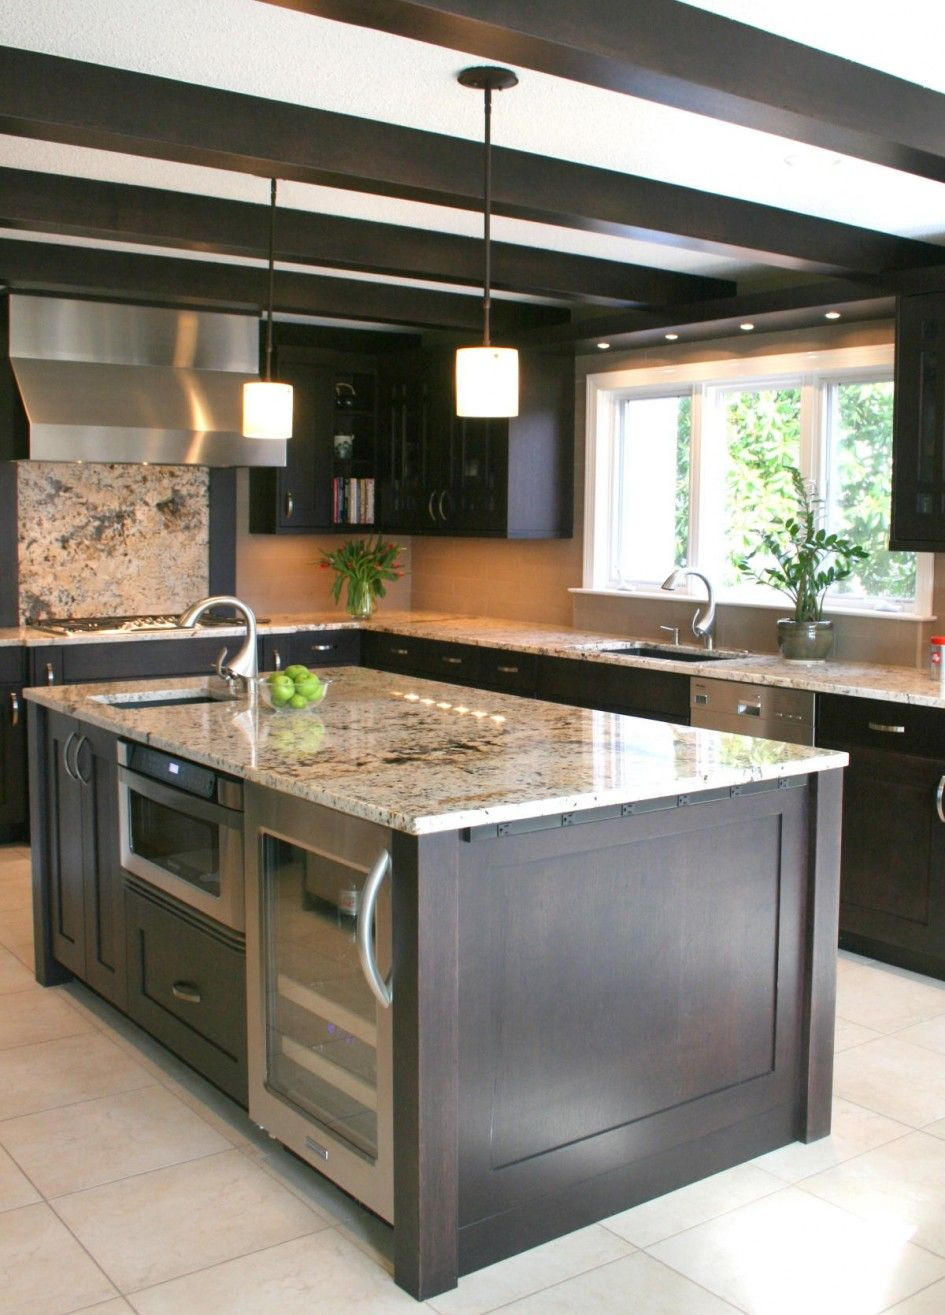 Stylish Kitchen Islands Without Wheels Of Microwave Under Kitchen Island And Wine Fridge Und Kitchen Island Design Stylish Kitchen Island Kitchen Remodel Small